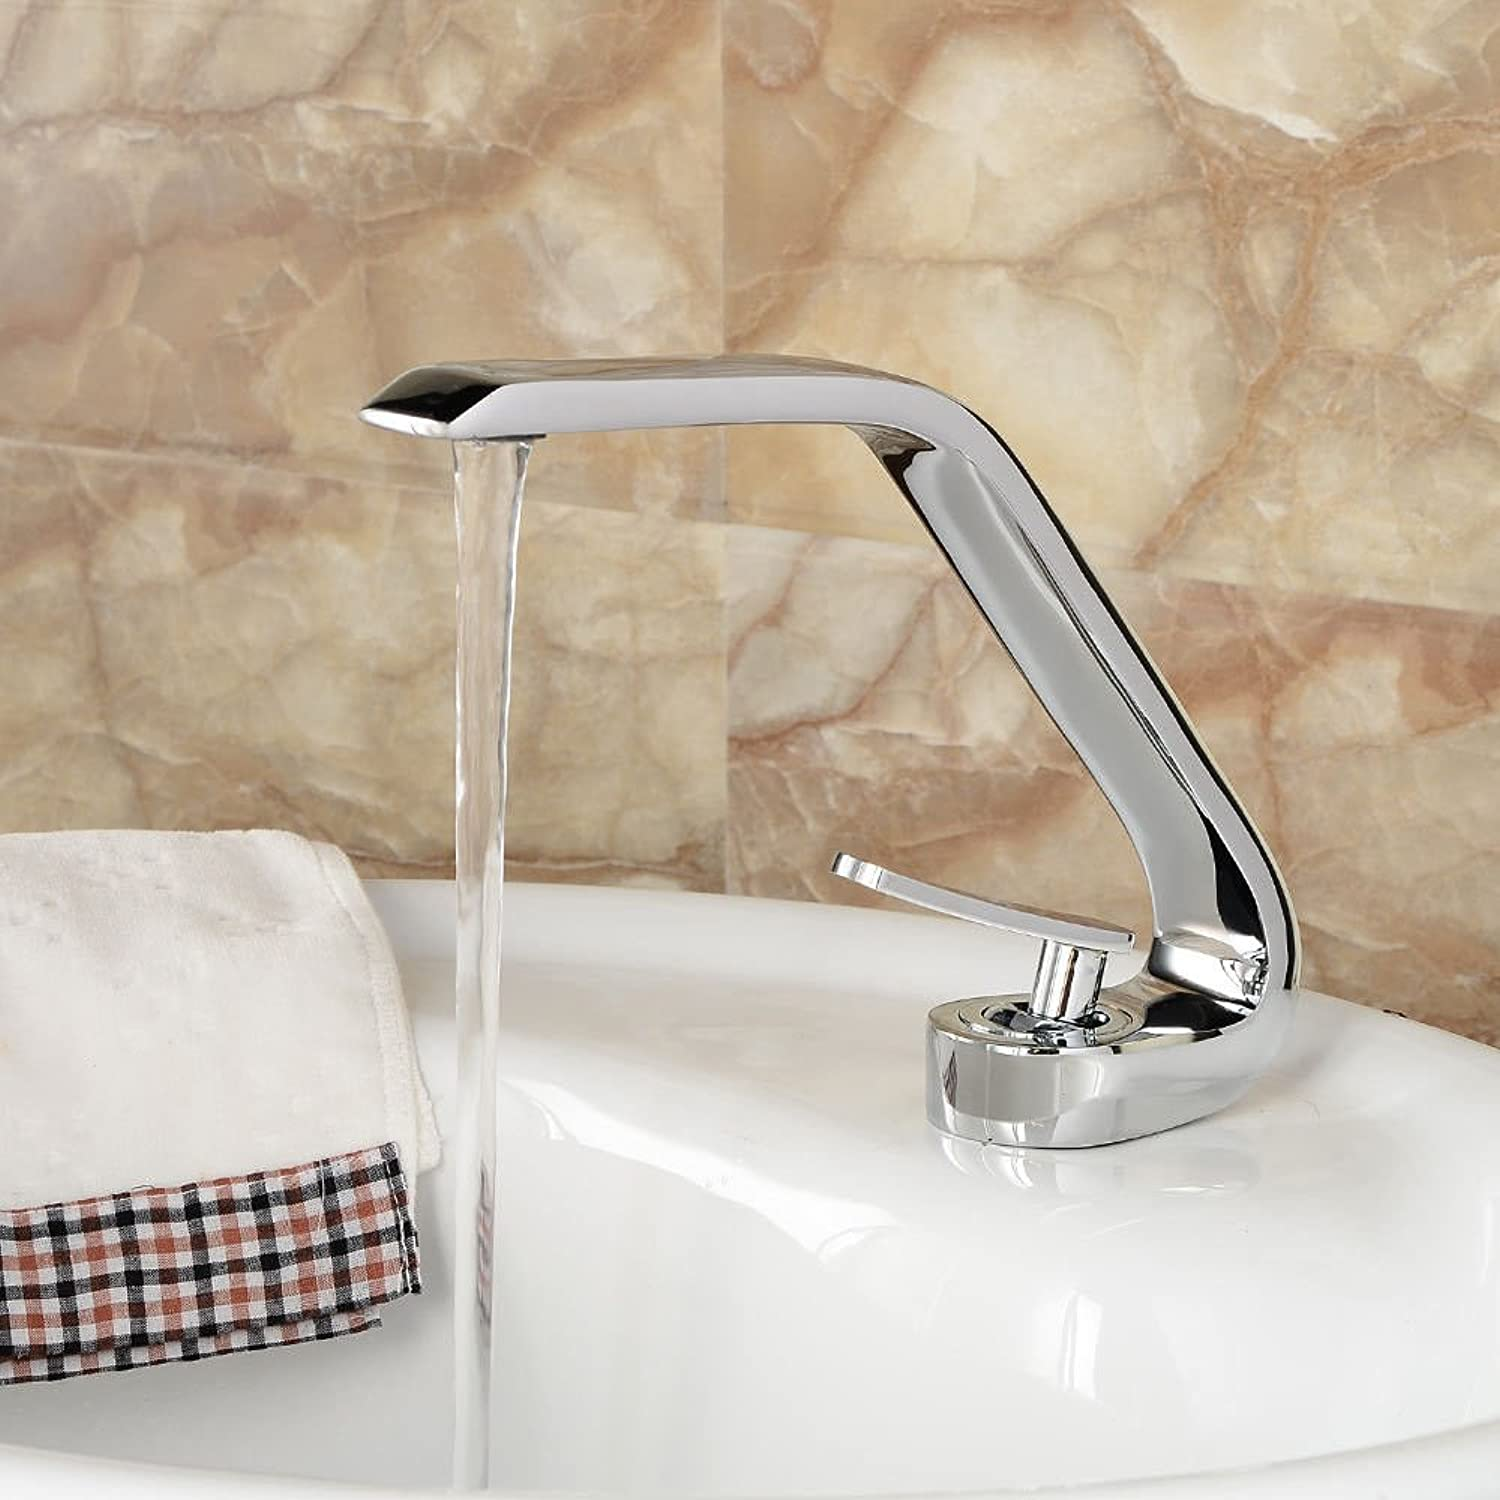 AQMMi Bathroom Sink Faucet Basin Mixer Tap Single Lever Hot and Cold Water Chrome Plating Silver Copper Basin Sink Tap Bathroom Bar Faucet